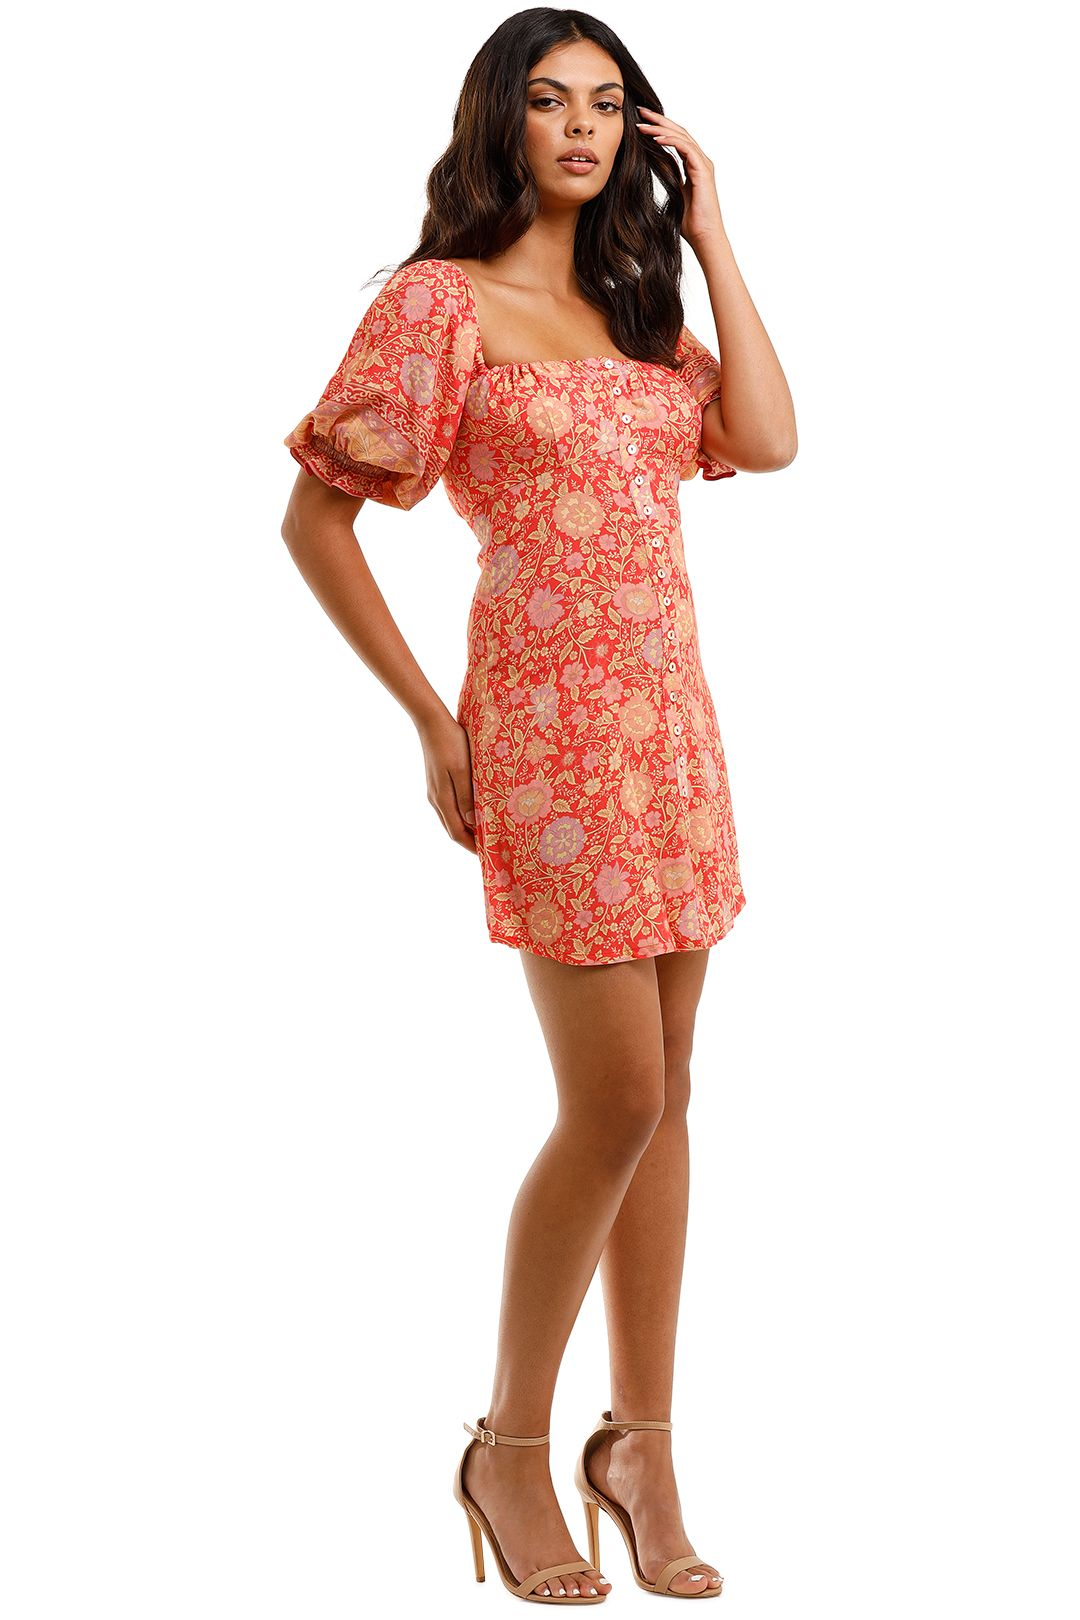 Spell Love Story Mini Dress Red Coral